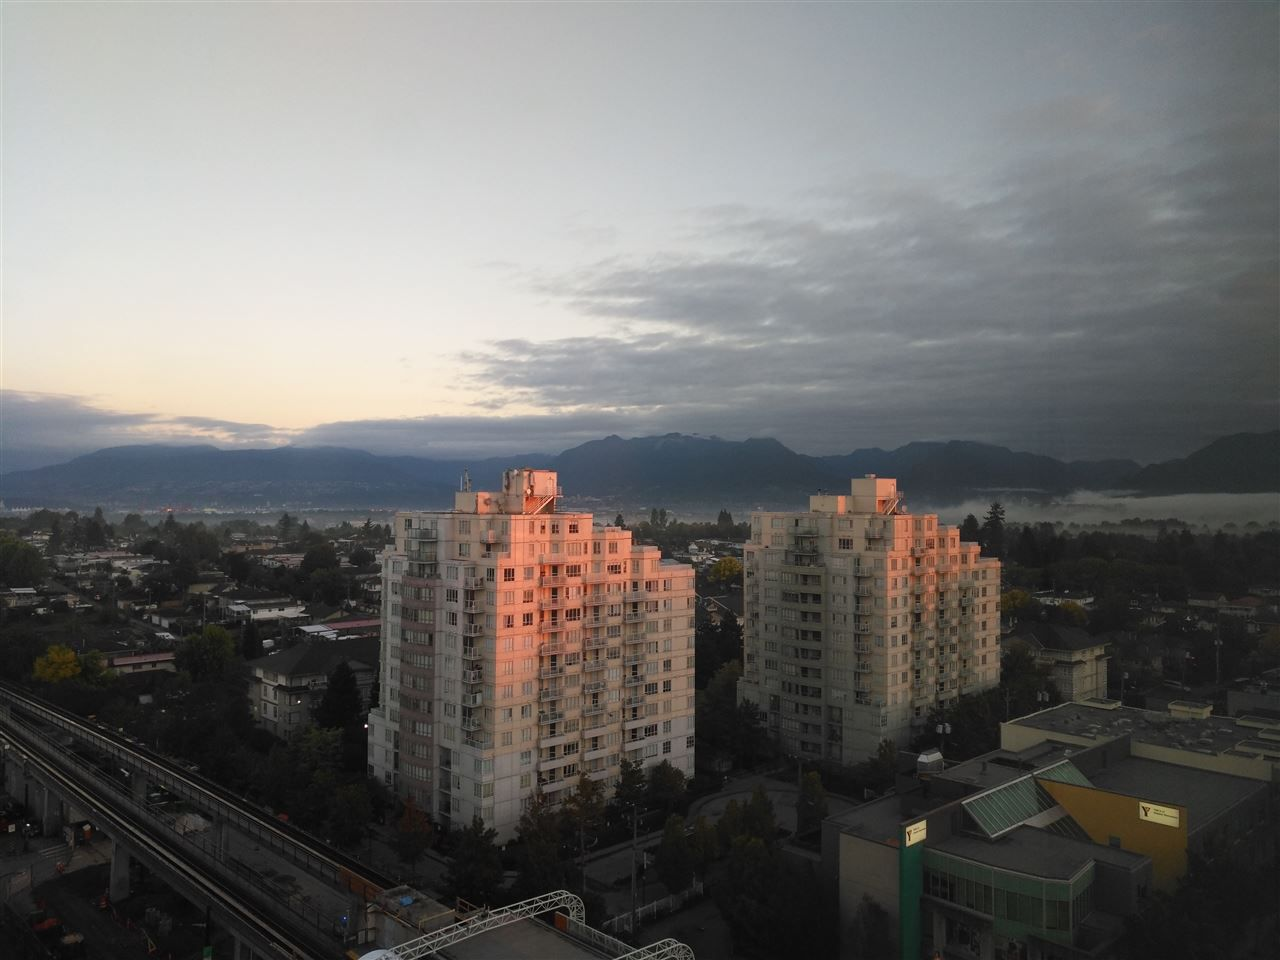 """Main Photo: 1605 3438 VANNESS Avenue in Vancouver: Collingwood VE Condo for sale in """"CENTRO"""" (Vancouver East)  : MLS®# R2385254"""